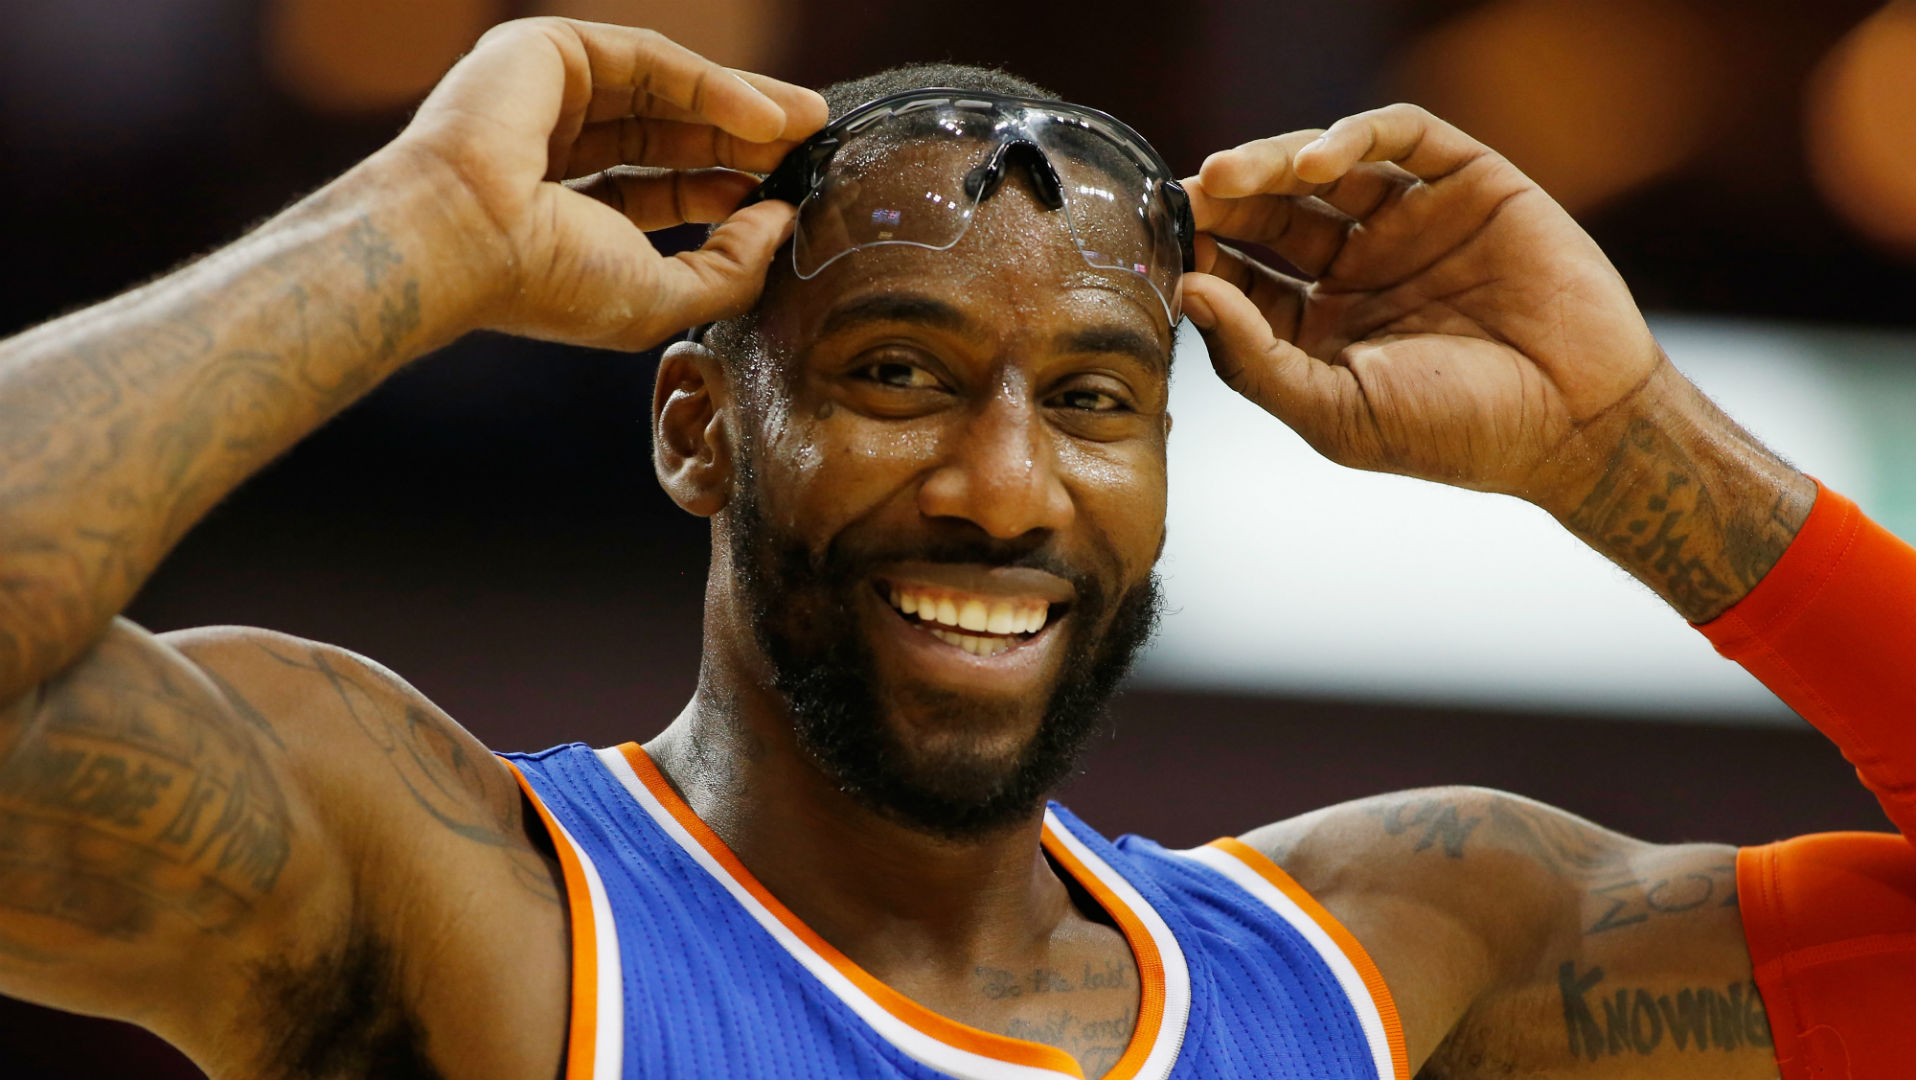 Stoudemire-amare-02062015-us-news-getty-ftr_1h3oski4hdvsczx4p2fpahni7